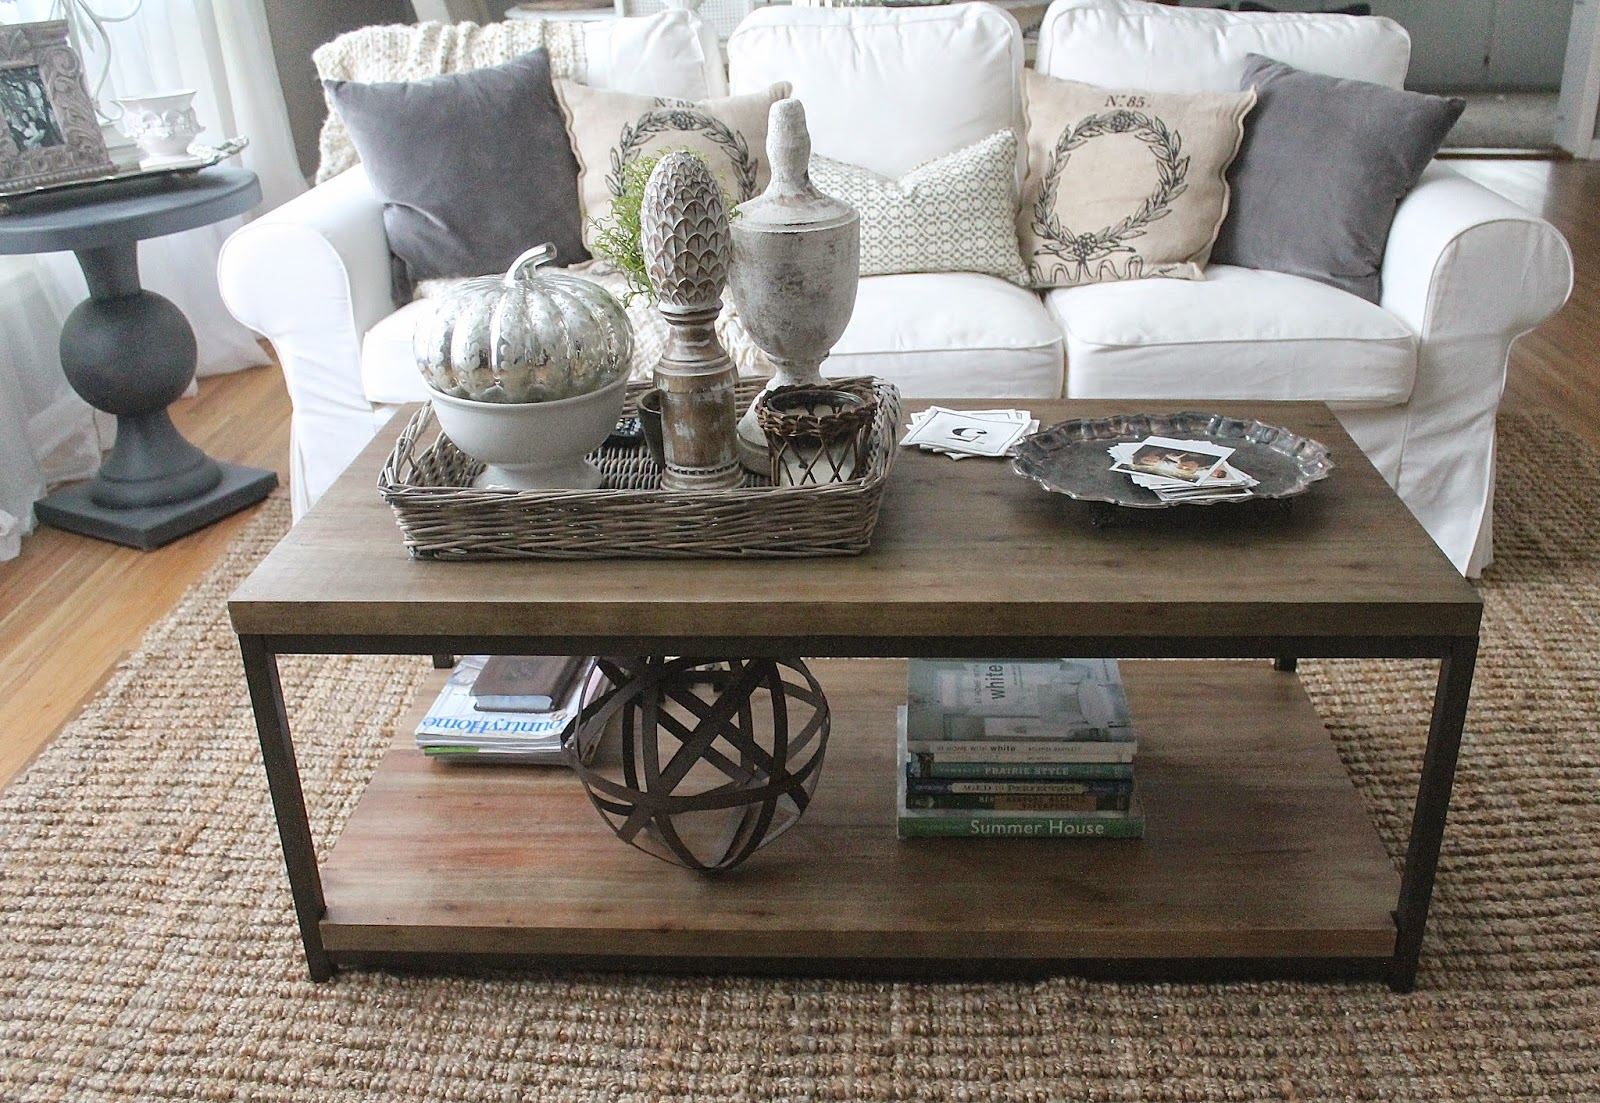 Coffee Table Centerpiece Ideas 29 tips for a perfect coffee table styling - belivindesign